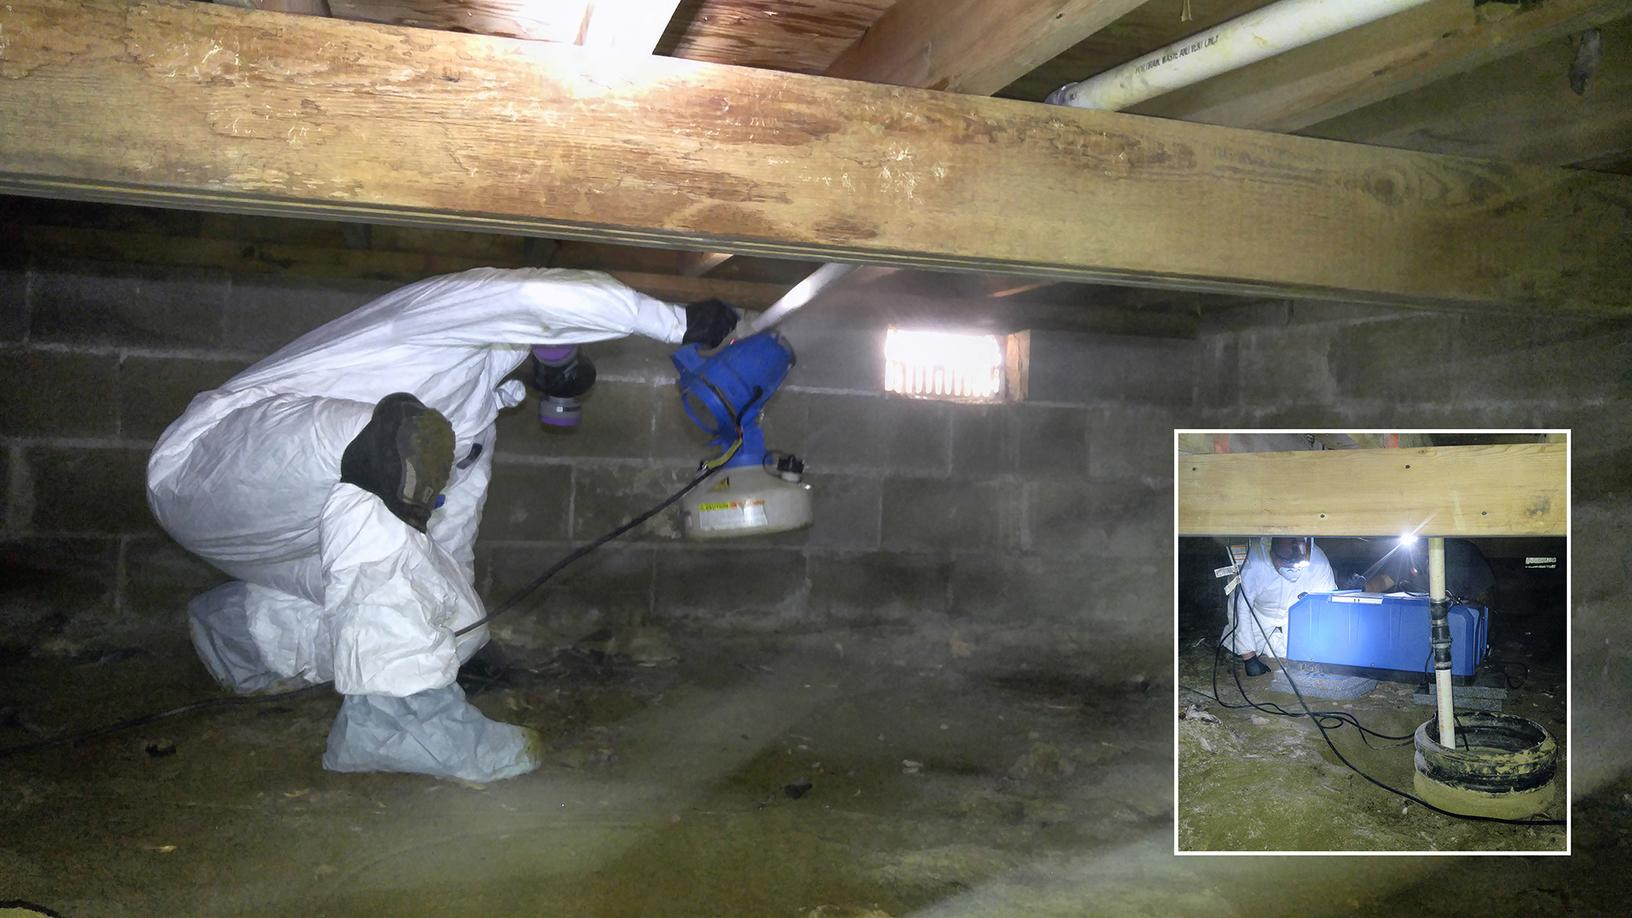 Full Clean up of Moldy Crawl Space in Englishtown, NJ - After Photo